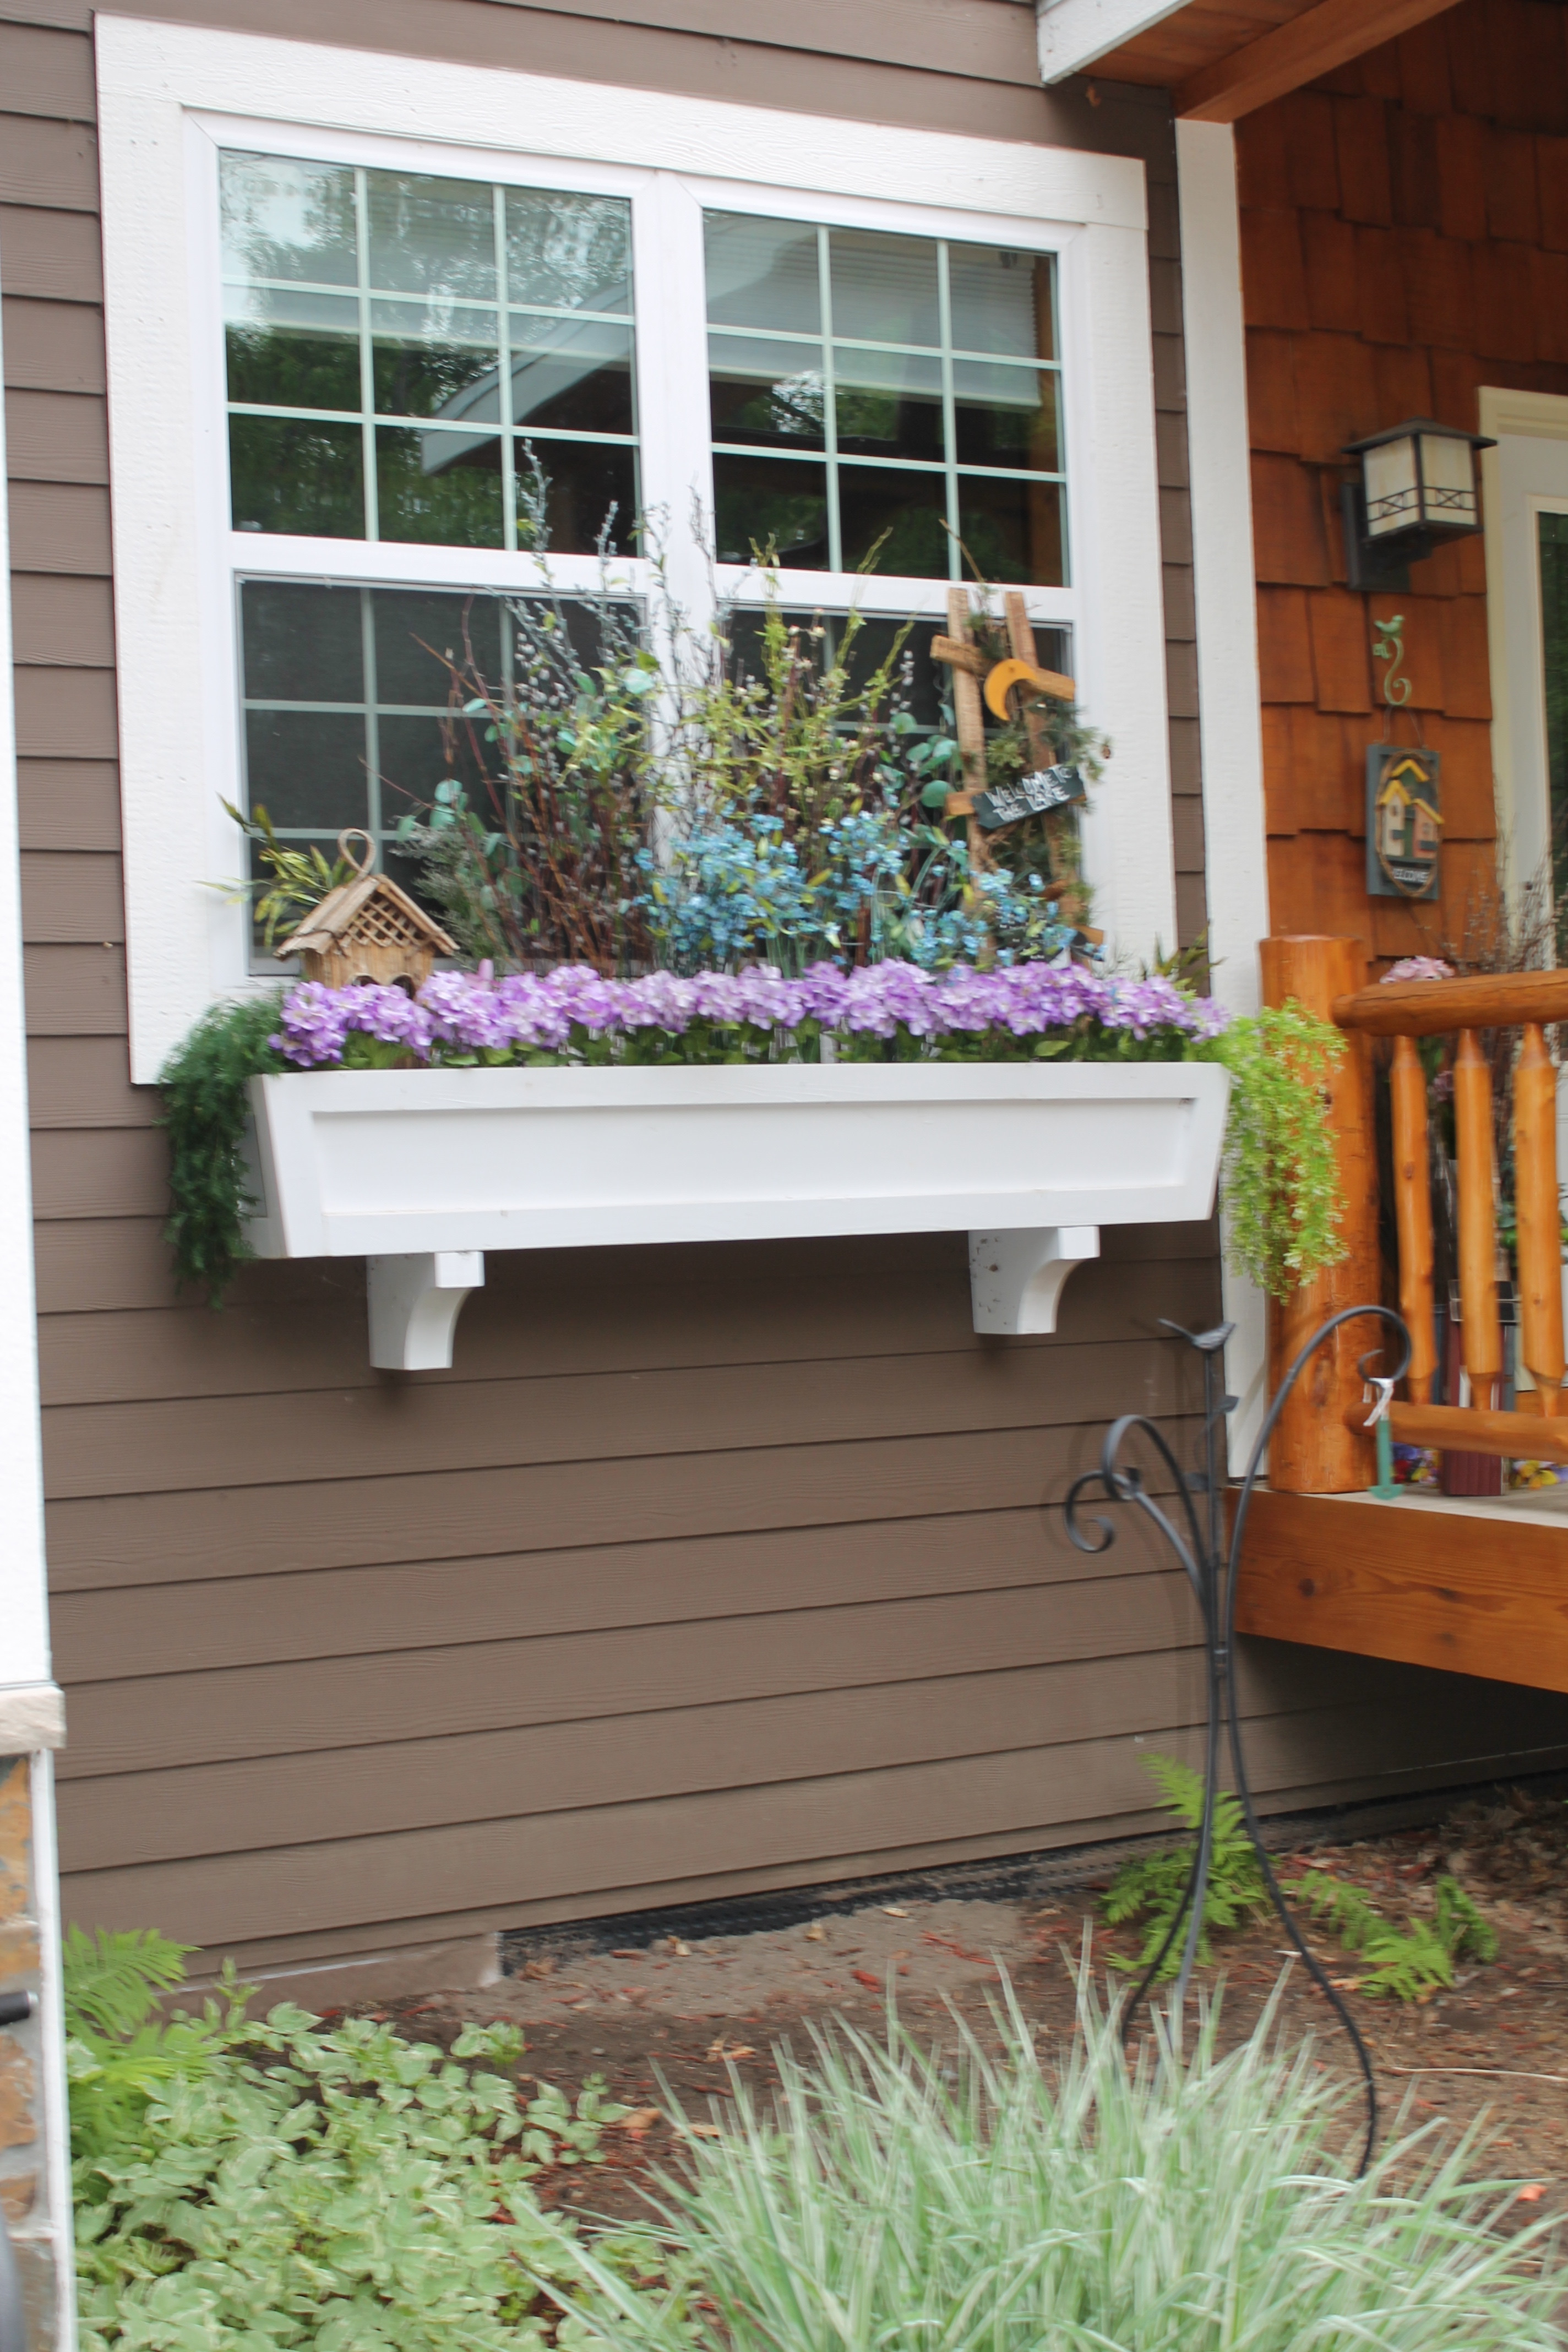 Best ideas about Window Flower Boxes DIY . Save or Pin Remodelaholic Now.